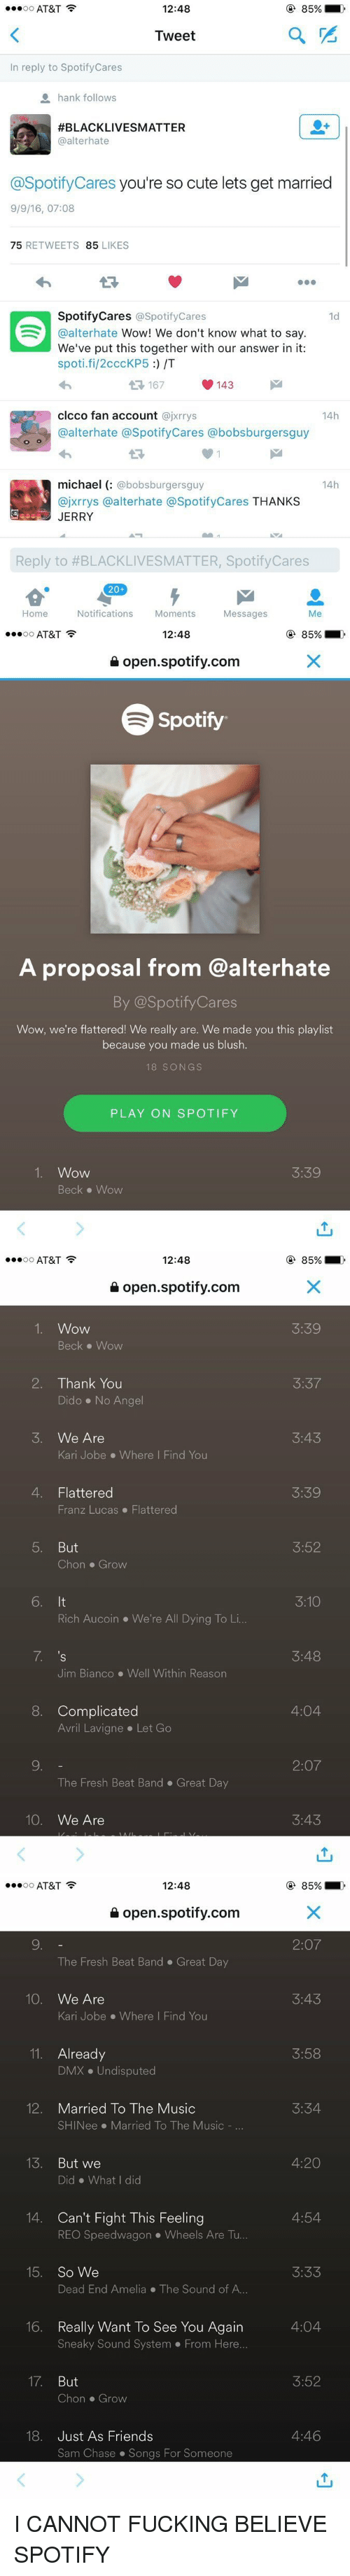 4:20, Cute, and Dmx: 12:48  85%  OO  AT&T  Tweet  In reply to Spotify Cares  hank follows  AFBLACKLIVESMATTER  @alterhate  @Spotify Cares you're so cute lets get married  9/9/16, 07:08  75  RETWEETS  85  LIKES  Spotify Cares @Spotify Cares  1d  @alterhate  Wow! We don't know what to say  We've put this together with our answer in it:  spoti.fi/2cccKP5 /T  V 143  clcco fan account  @jxrrys  14h  @alterhate a SpotifyCares @bobsburgersguy  michael  bobsburgersguy  14h  ajxrrys a alternate a Spotify Cares THANKS  JERRY  Reply to #BLACKLIVESMATTER, Spotify Cares  20  Home  Notifications  Moments  Messages  Me   12:48  85%  OO  AT&T  open spotify.com  Spotify  A proposal from @alterhate  By @Spotify Cares  Wow, we're flattered  We really are. We made you this playlist  because you made us blush.  18 SONG S  PLAY ON SPOTIFY  1. Wow  Beck Wow   12:48  OO  AT&T  open spotify.com  1. Wow  Beck Wow  2. Thank You  Dido No Angel  3. We Are  Kari Jobe Where I Find You  4. Flattered  Franz Lucas Flattered  5. But  on Grow  6. It  Rich Aucoin We're All Dying To Li...  7. 's  Jim Bianco Well within Reason  8. Complicated  Avril Lavigne Let Go  The Fresh Beat Band Great Day  10  We Are  85%  3:37  3:43  3:39  3:52  3:10  3:48  4:04  2:07  3:43   12:48  OO  AT&T  open spotify.com  The Fresh Beat Band Great Day  10  We Are  Kari Jobe Where I Find You  11. Already  DMX Undisputed  12. Married To The Music  SHINee Married To The Music  13  But we  Did What did  14. Can't Fight This Feeling  REO Speedwagon Wheels Are Tu  15 So We  Dead End Amelia The Sound of A...  16. Really want To see You Again  Sneaky Sound System From Here...  17  But  Chon Grow  18. Just As Friends  Sam Chase Songs For Someone  85%  2:07  3:43  3:58  3:34  4:20  4:54  3:33  4:04  3:52  4:46 I CANNOT FUCKING BELIEVE SPOTIFY